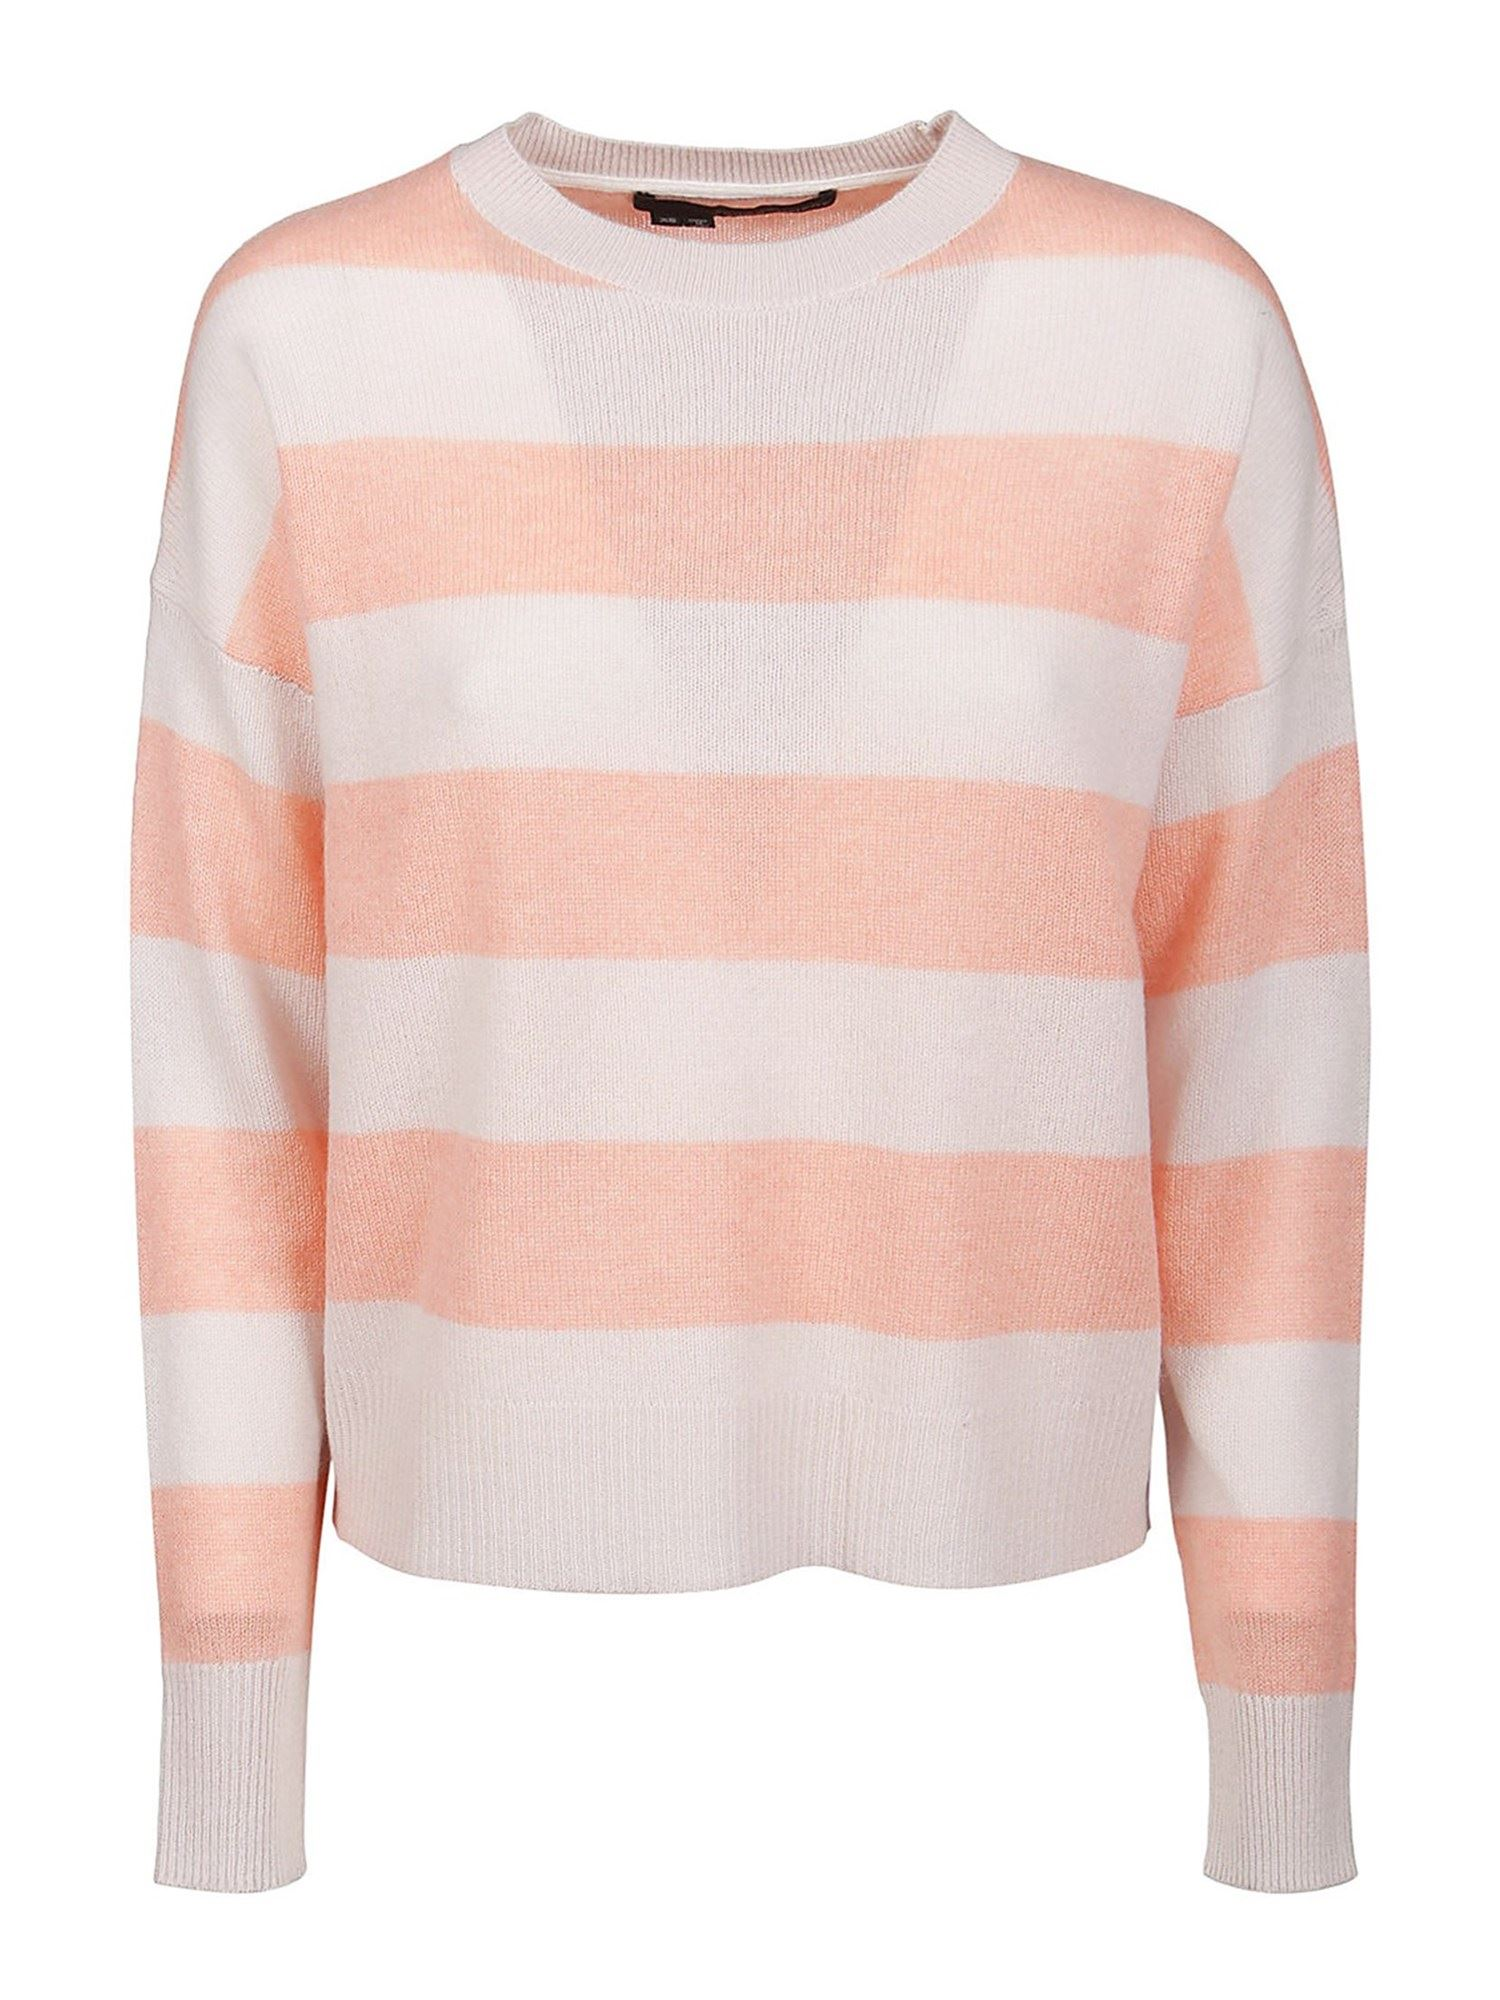 360cashmere MINDIE SWEATER IN WHITE AND PINK